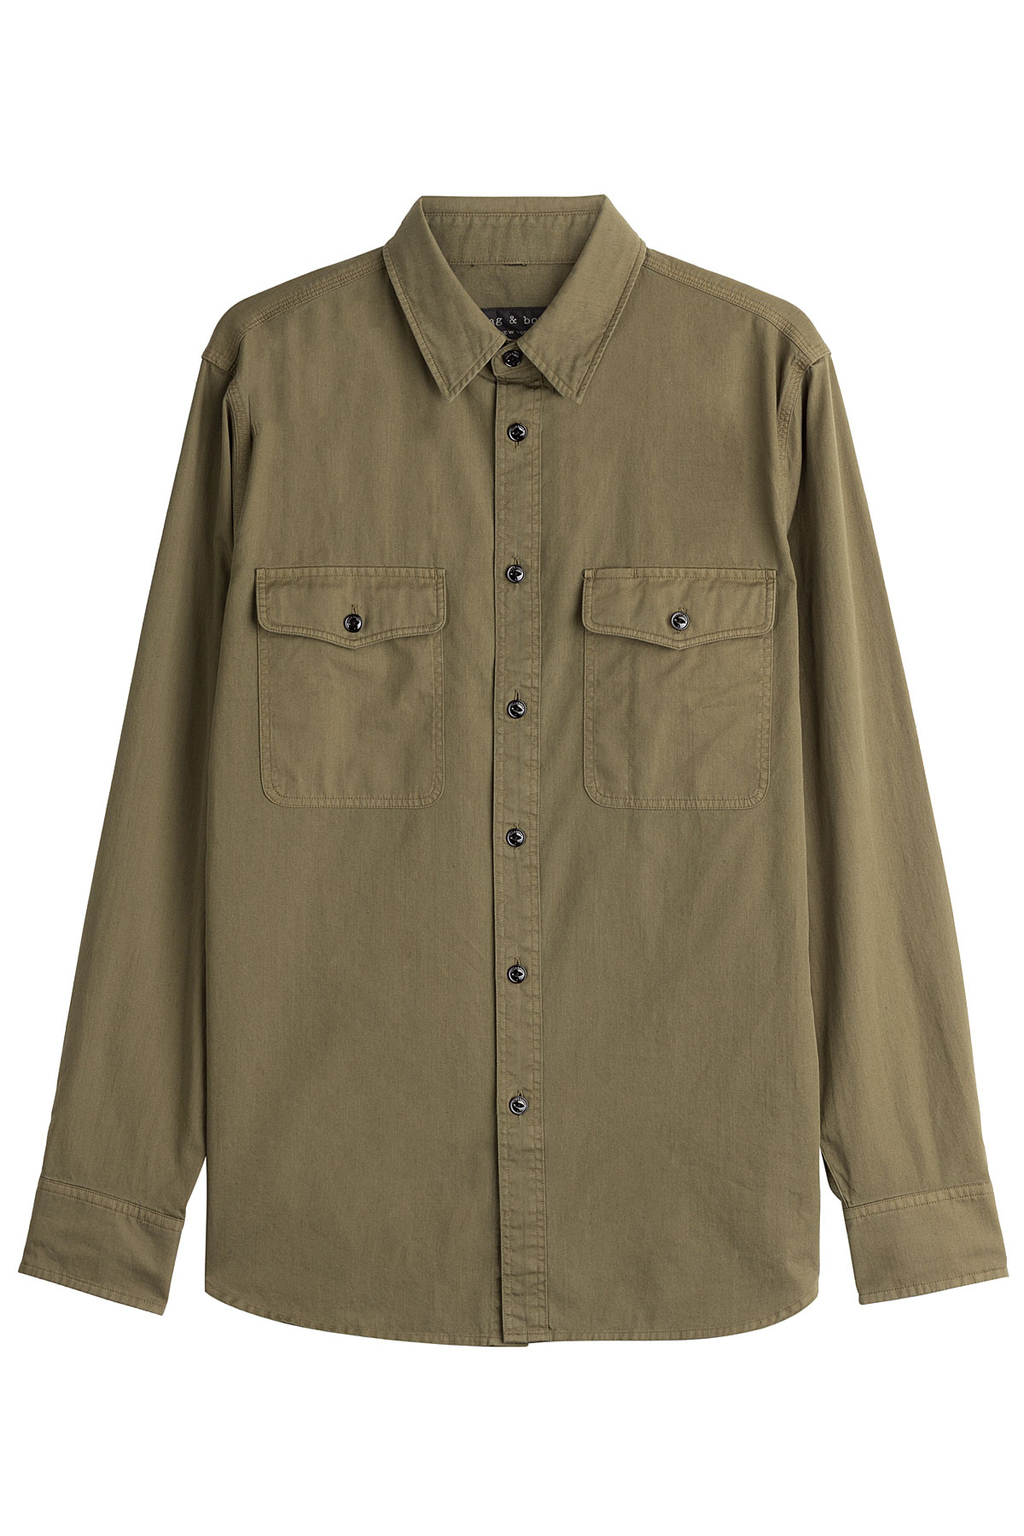 Cotton Shirt - neckline: shirt collar/peter pan/zip with opening; pattern: plain; style: shirt; predominant colour: khaki; occasions: casual; length: standard; fibres: cotton - 100%; fit: body skimming; sleeve length: long sleeve; sleeve style: standard; texture group: cotton feel fabrics; pattern type: fabric; wardrobe: basic; season: a/w 2016